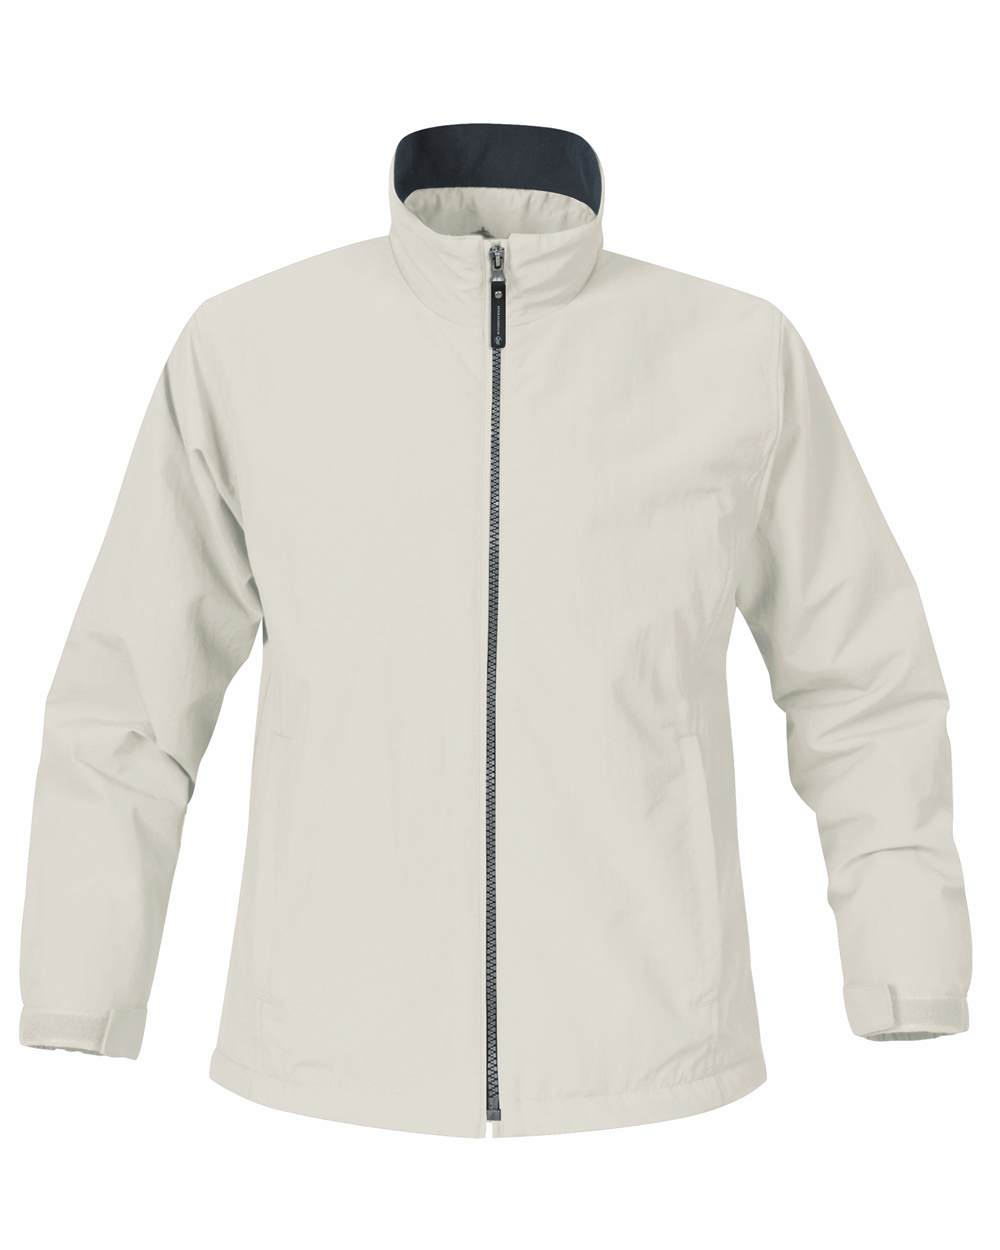 Stormtech XF-1W Ladies' Micro-Fleece Nylon Jacket